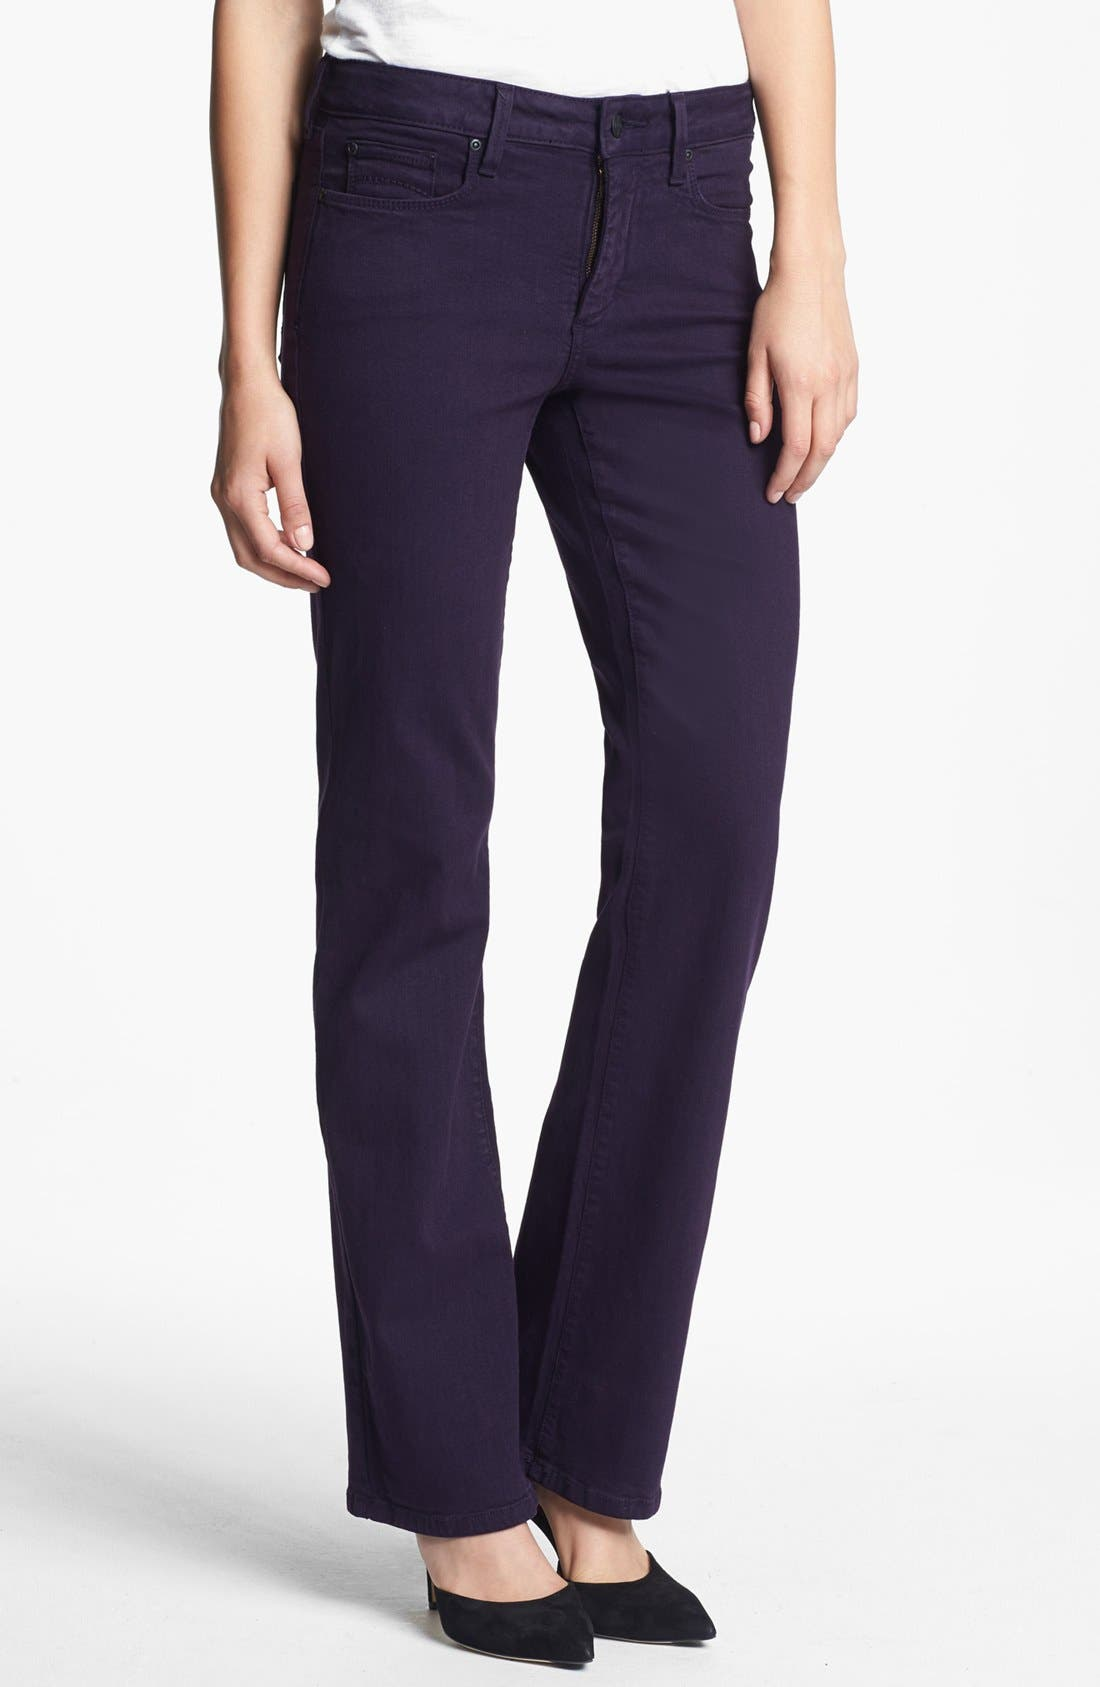 Alternate Image 1 Selected - NYDJ 'Barbara' Colored Stretch Bootcut Jeans